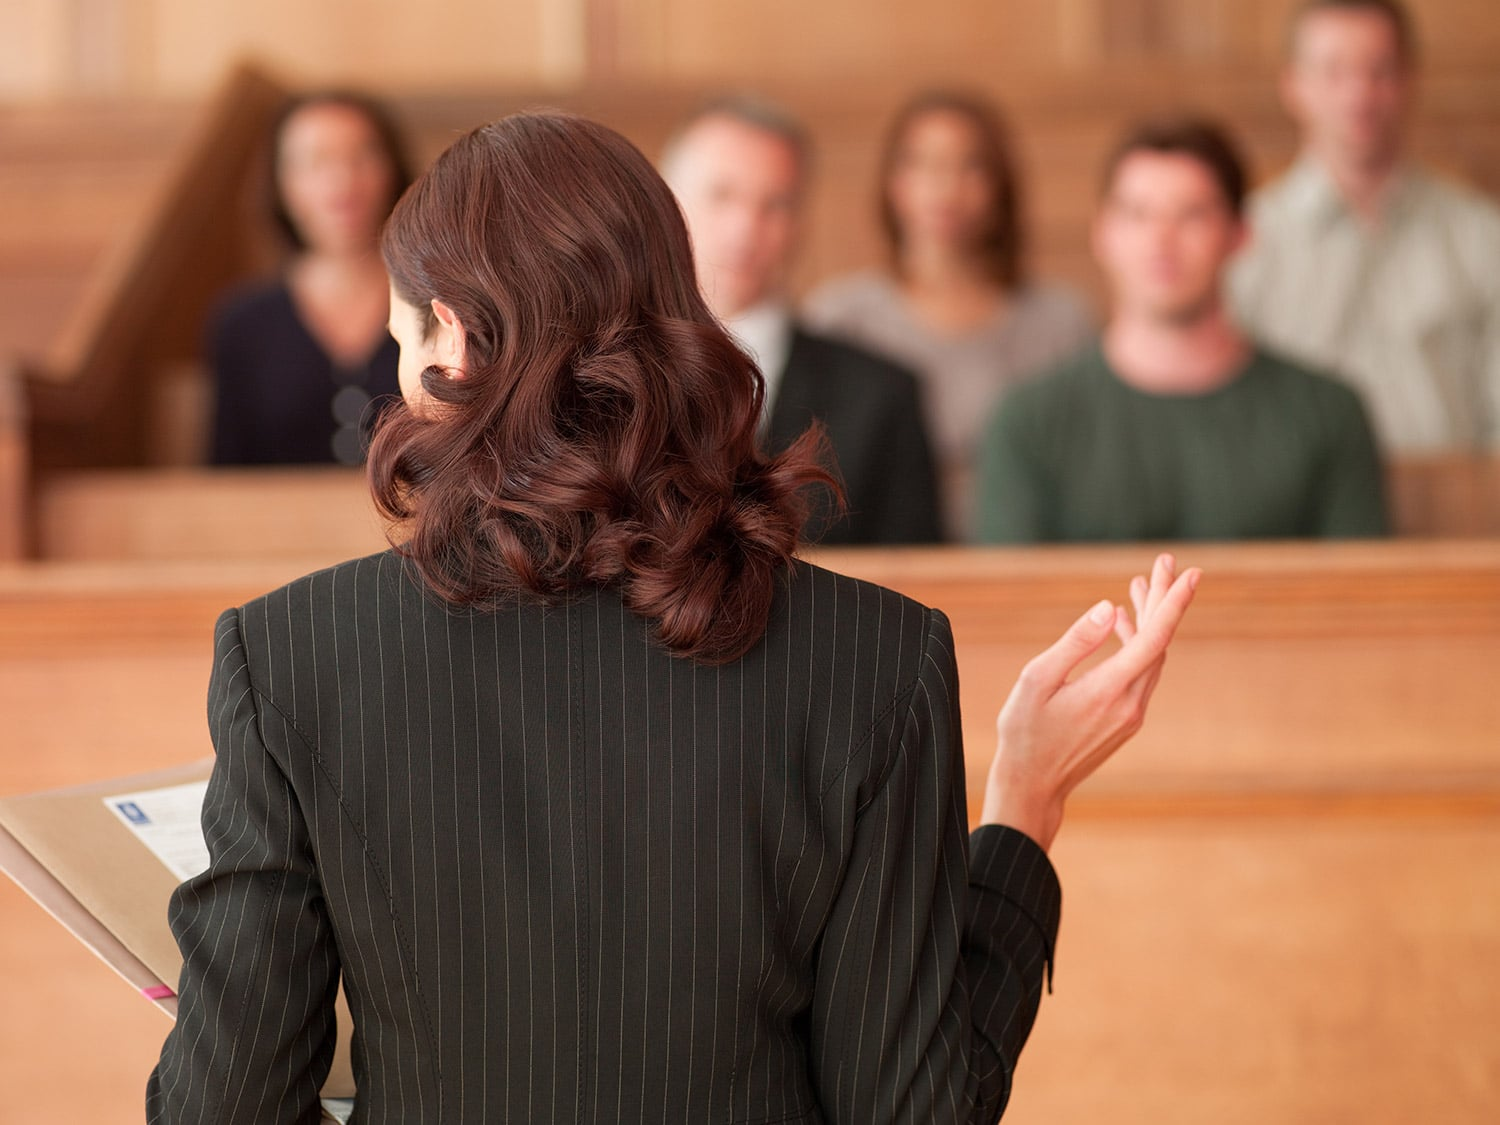 If you've been arrested on criminal charges you'll need the services of a forth Worh defense lawyer. Helpful tips on choosing the right one.